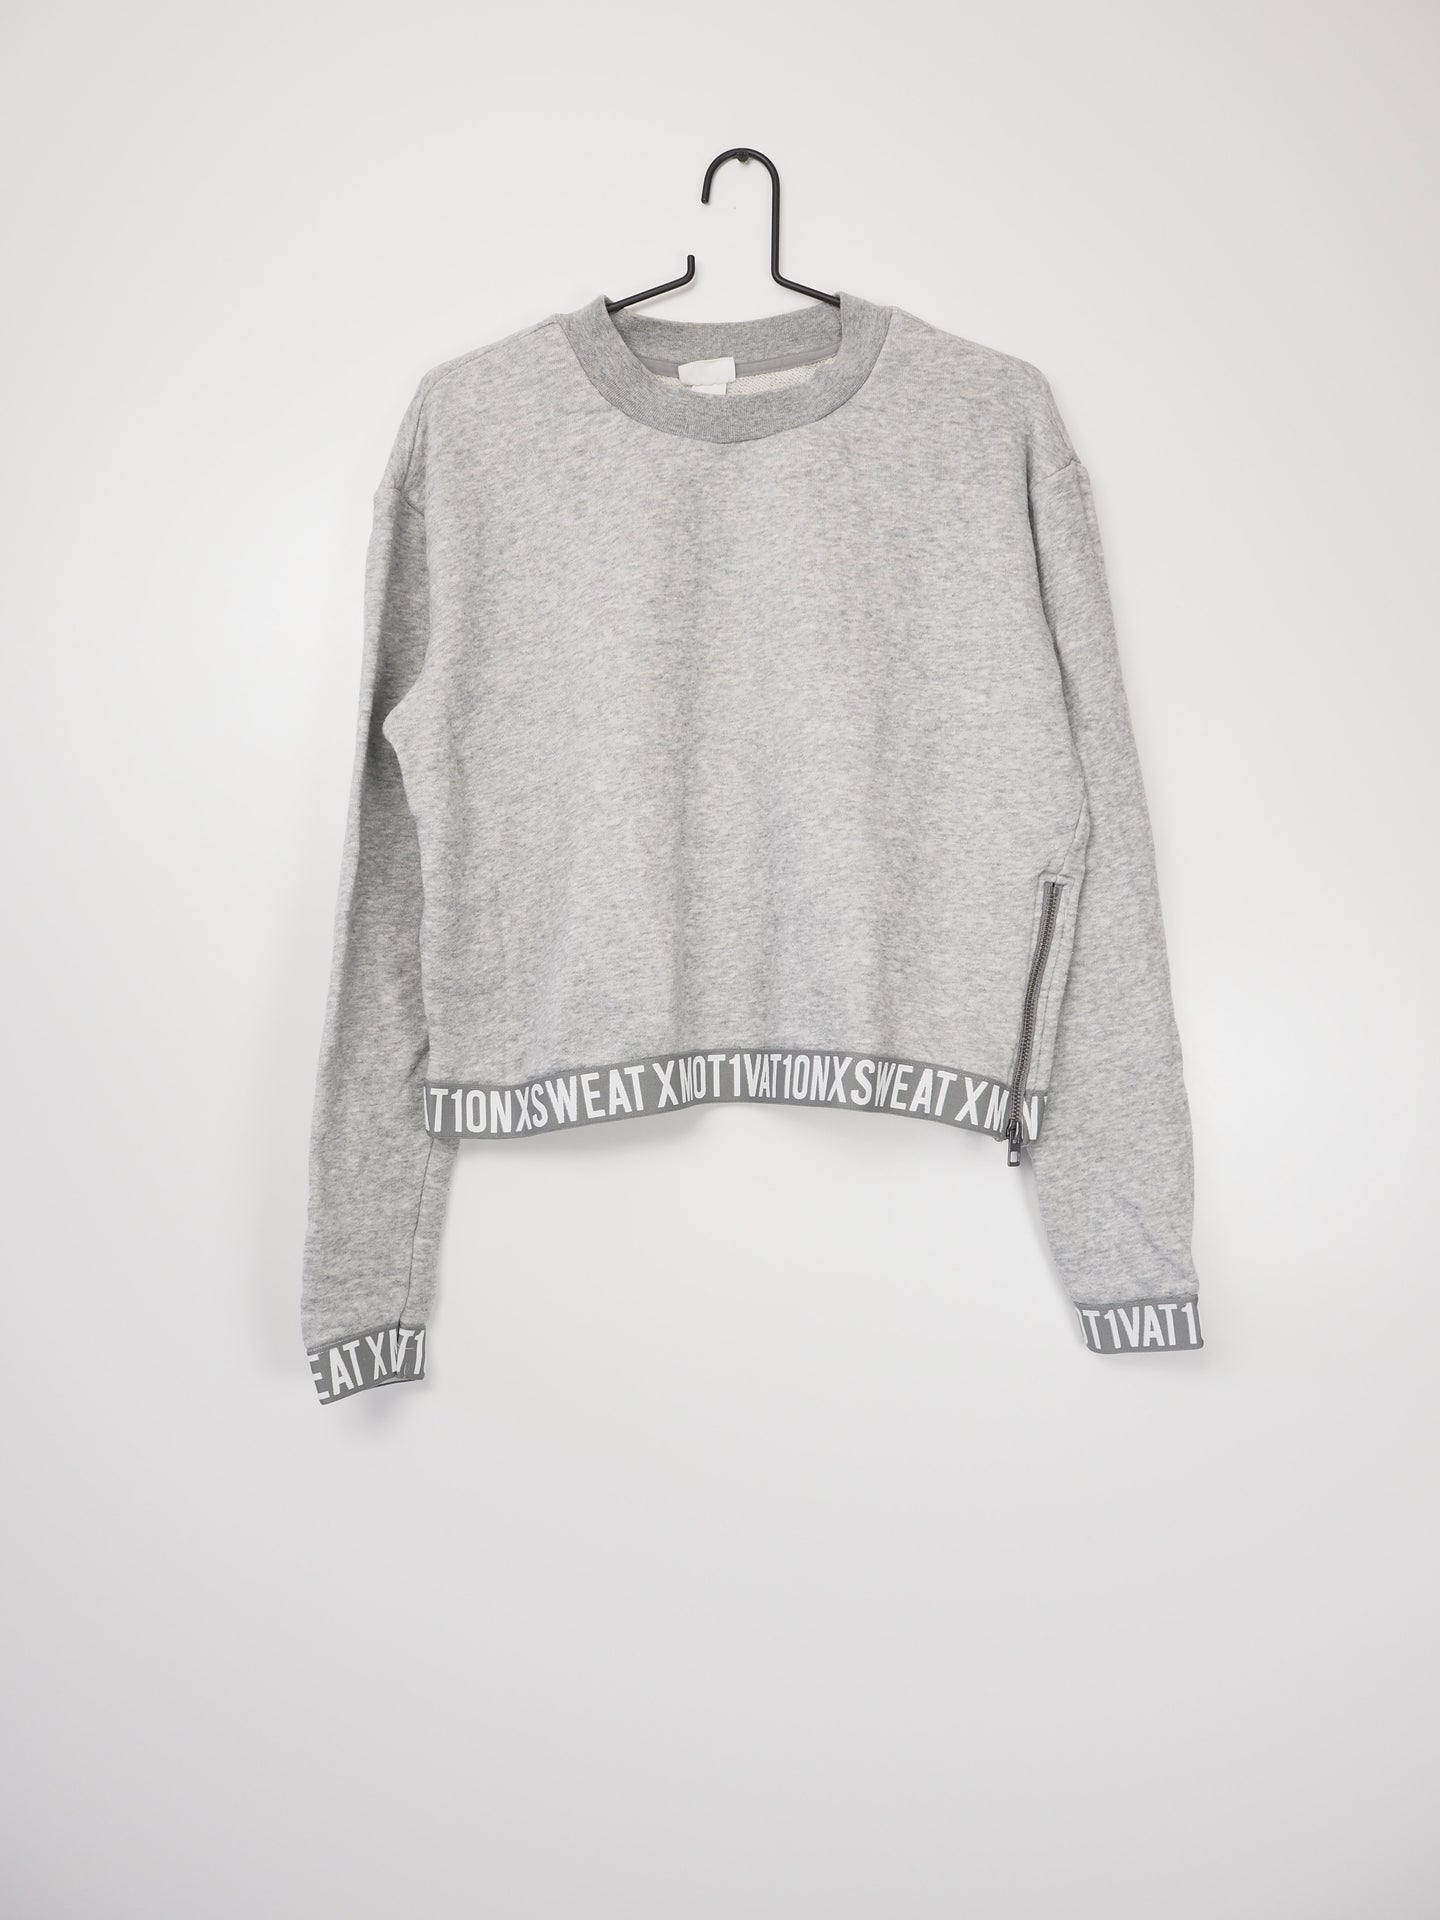 Mot1vation sweater (H&M)